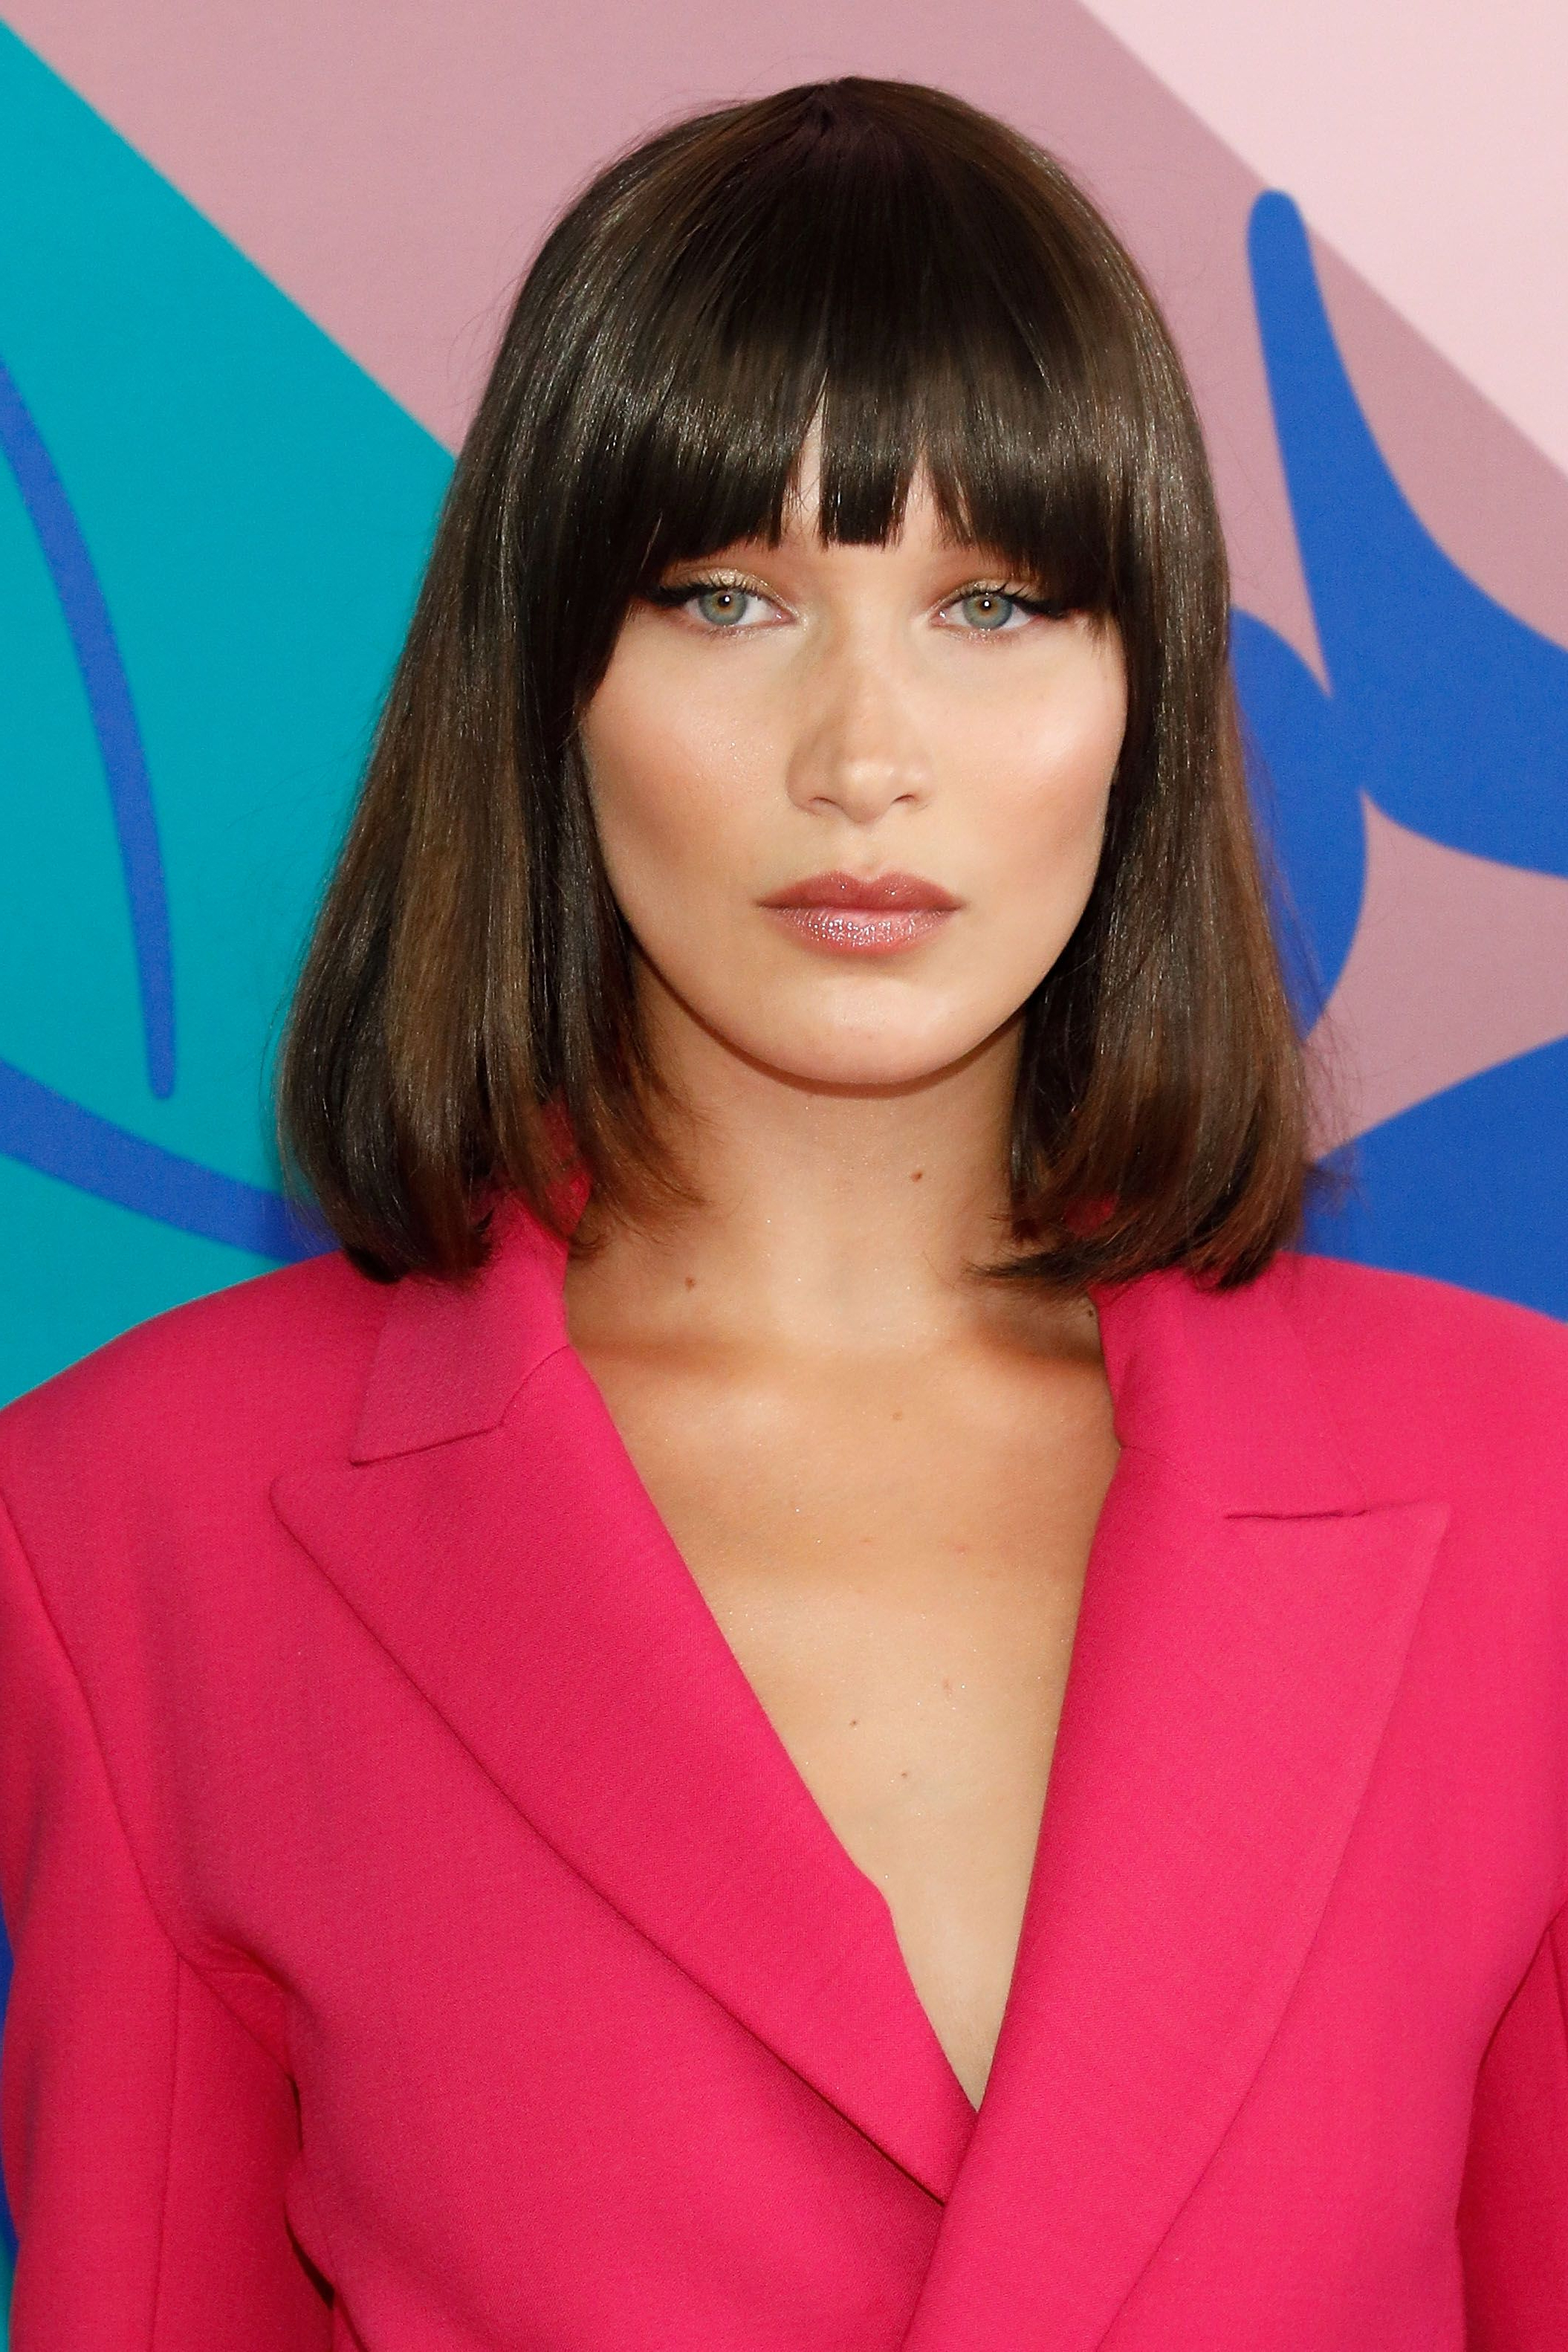 Well Liked Voluminous Side Bang Hairstyles Pertaining To 16 Hairstyles With Bangs – Bangs For Face Shape (View 17 of 20)